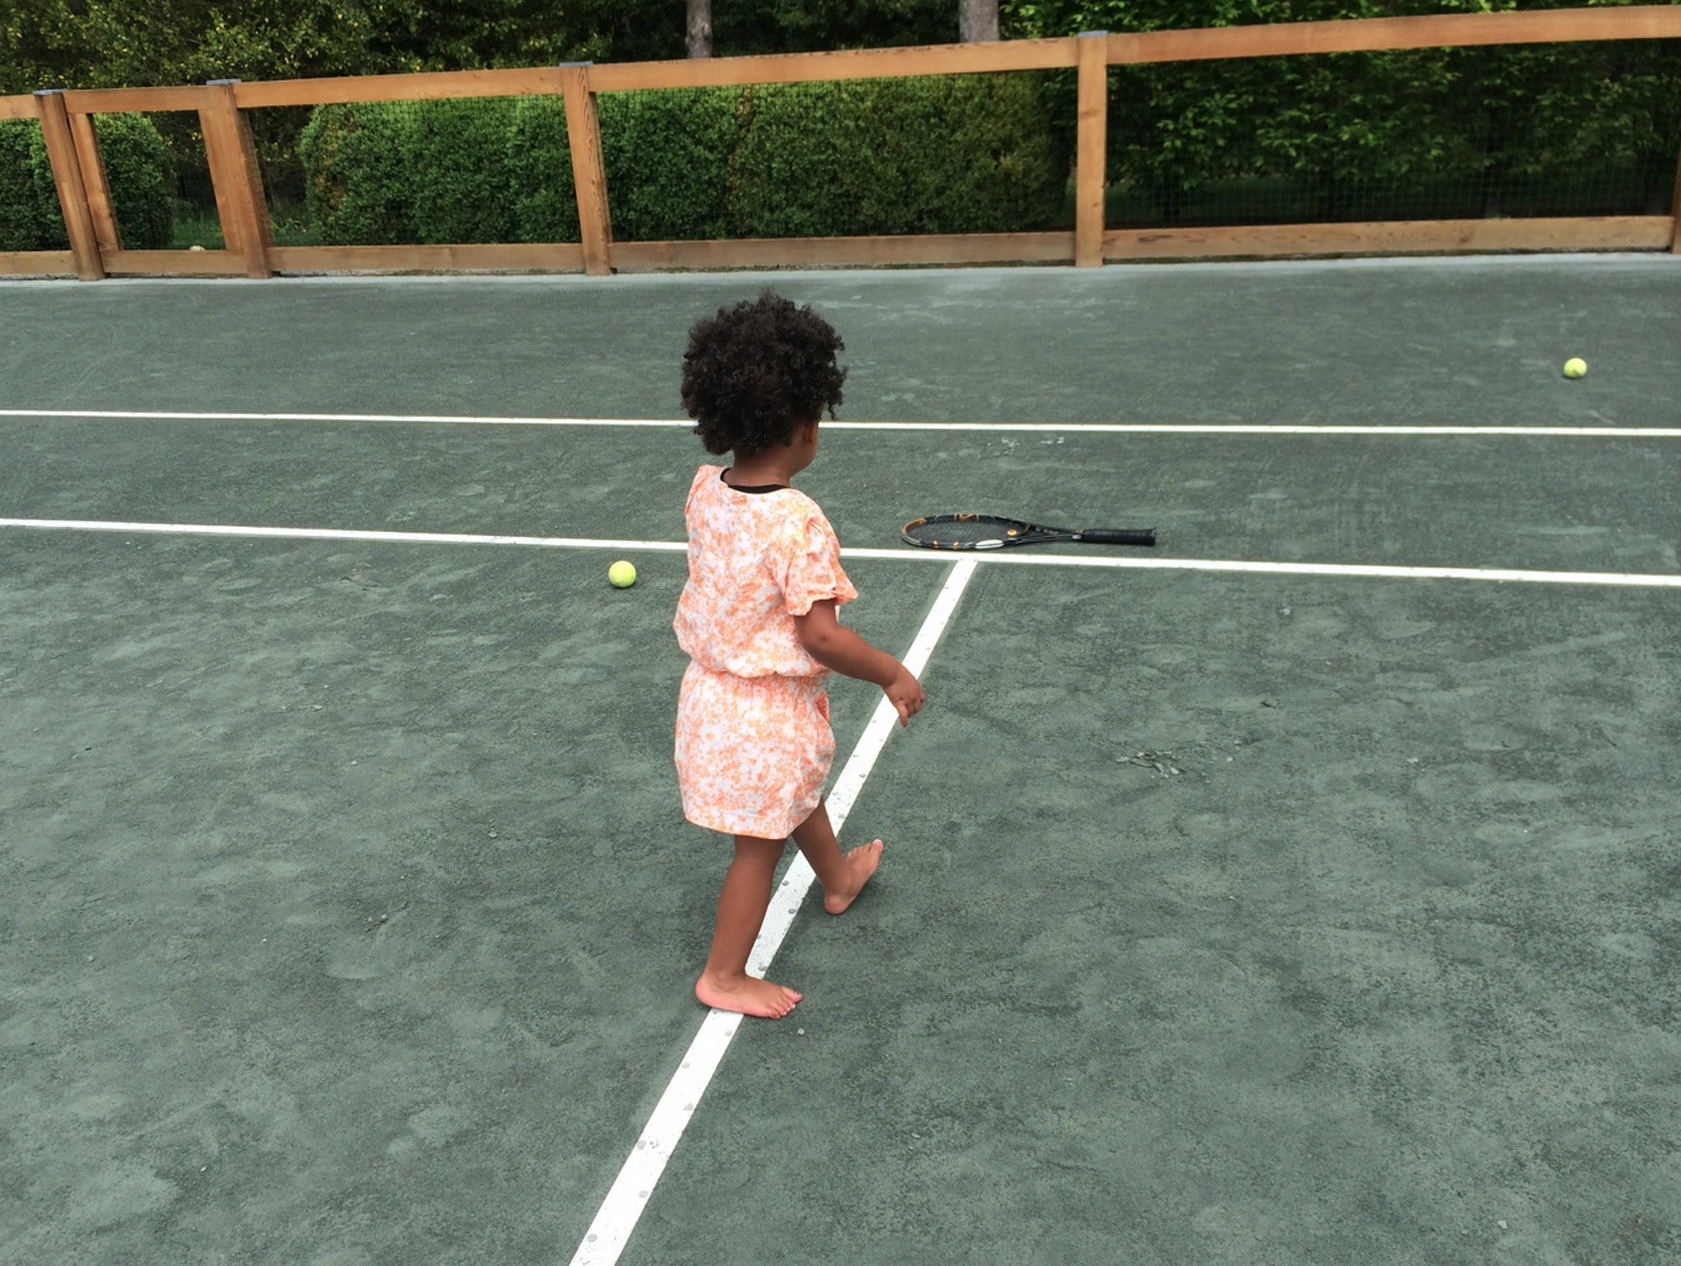 Blue tried her hand at tennis.  Source: Beyonce.com